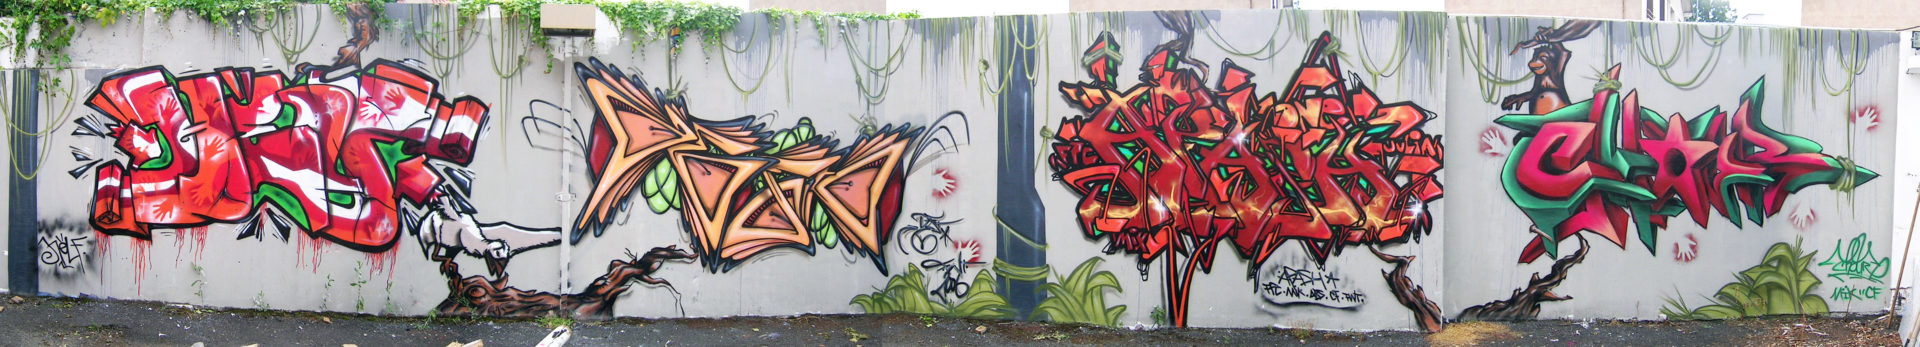 Fresque Jungle - Graffiti - Clermont-Ferrand